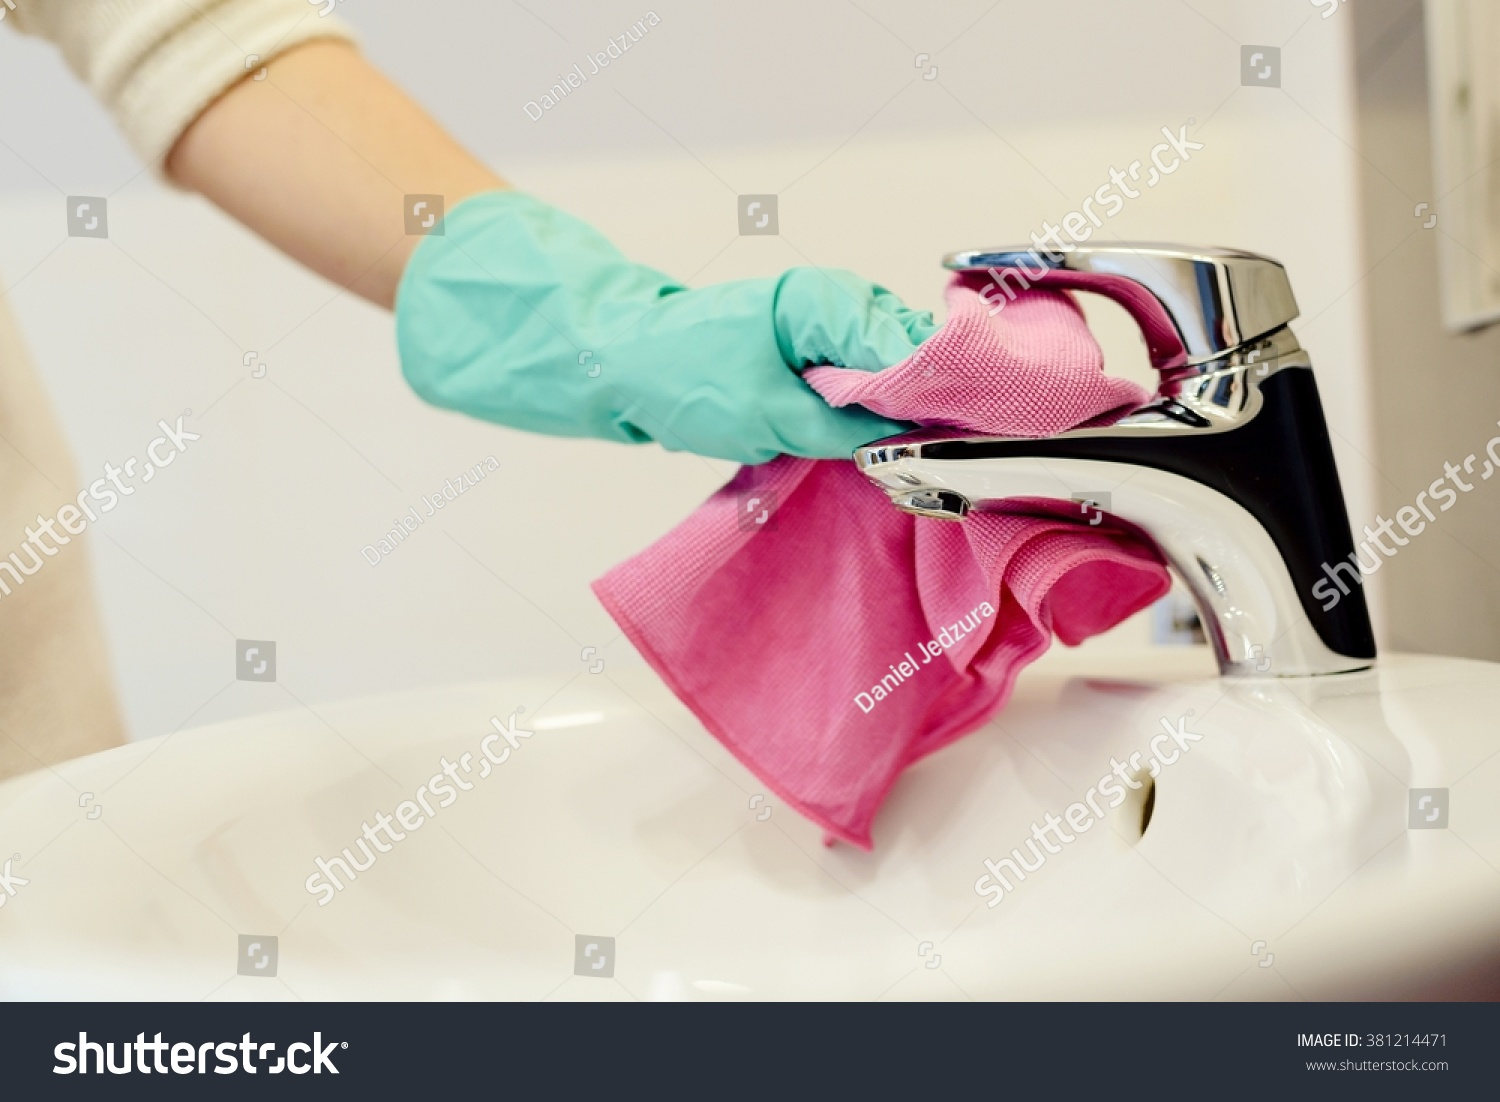 how to clean cloth gloves